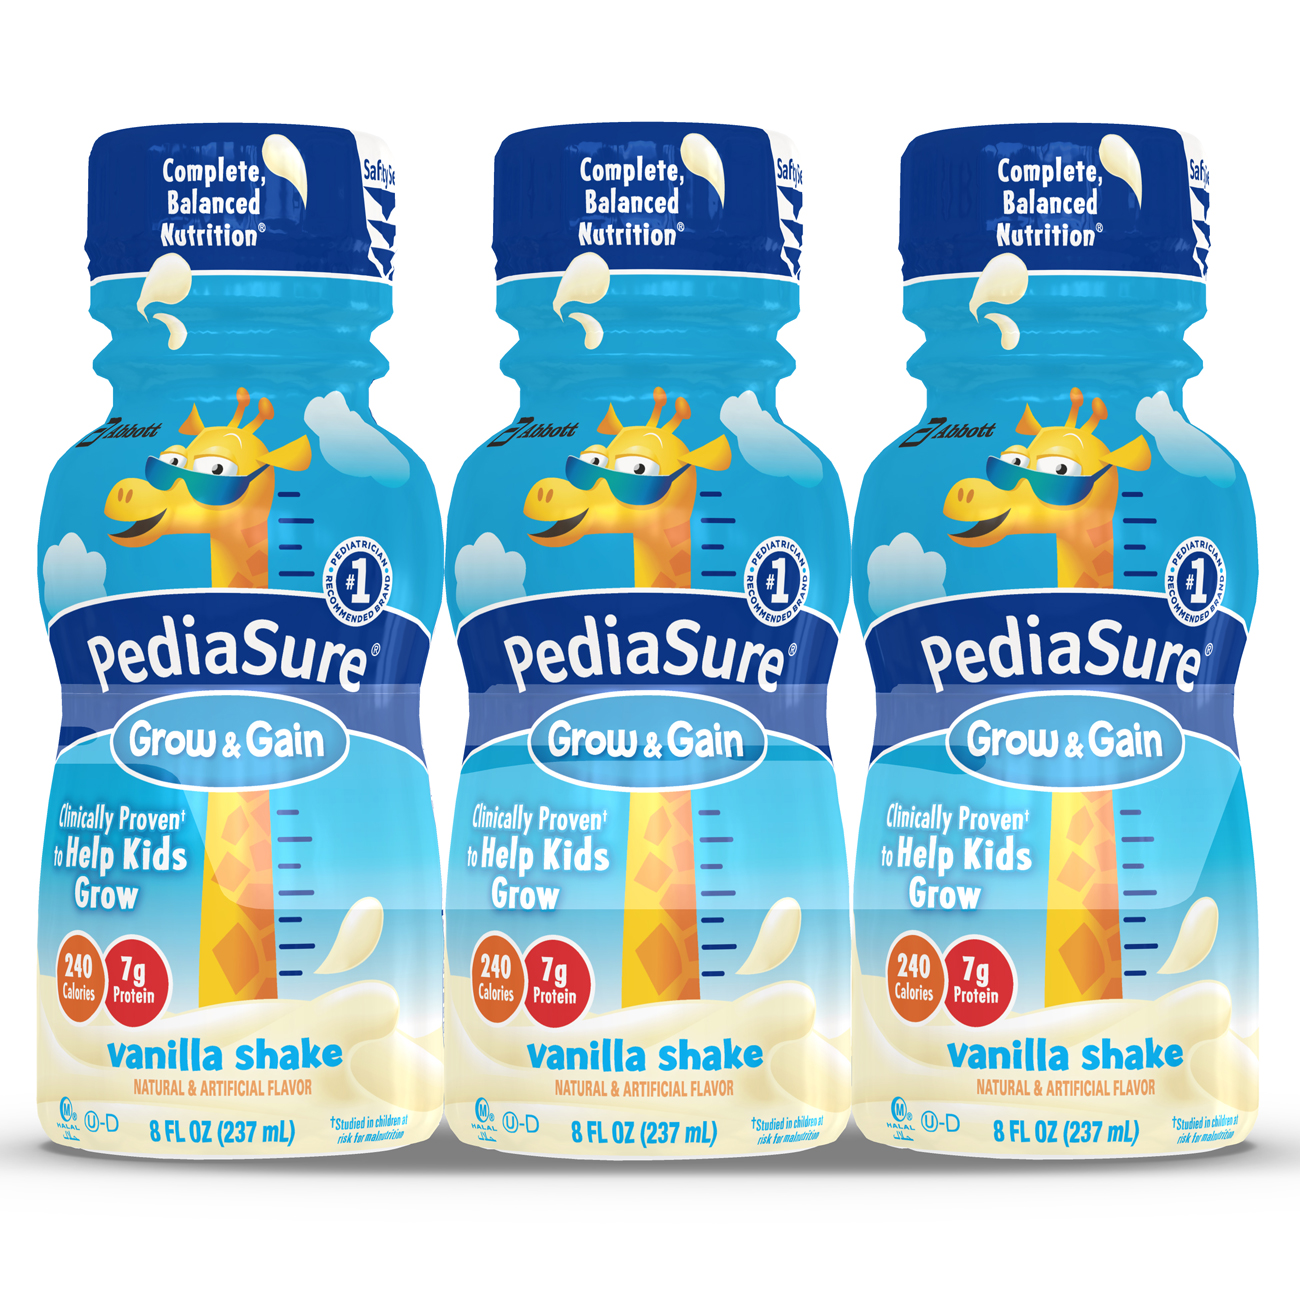 PediaSure Grow & Gain (24 Bottles) Nutrition Shake For Kids, Vanilla, 8 fl oz